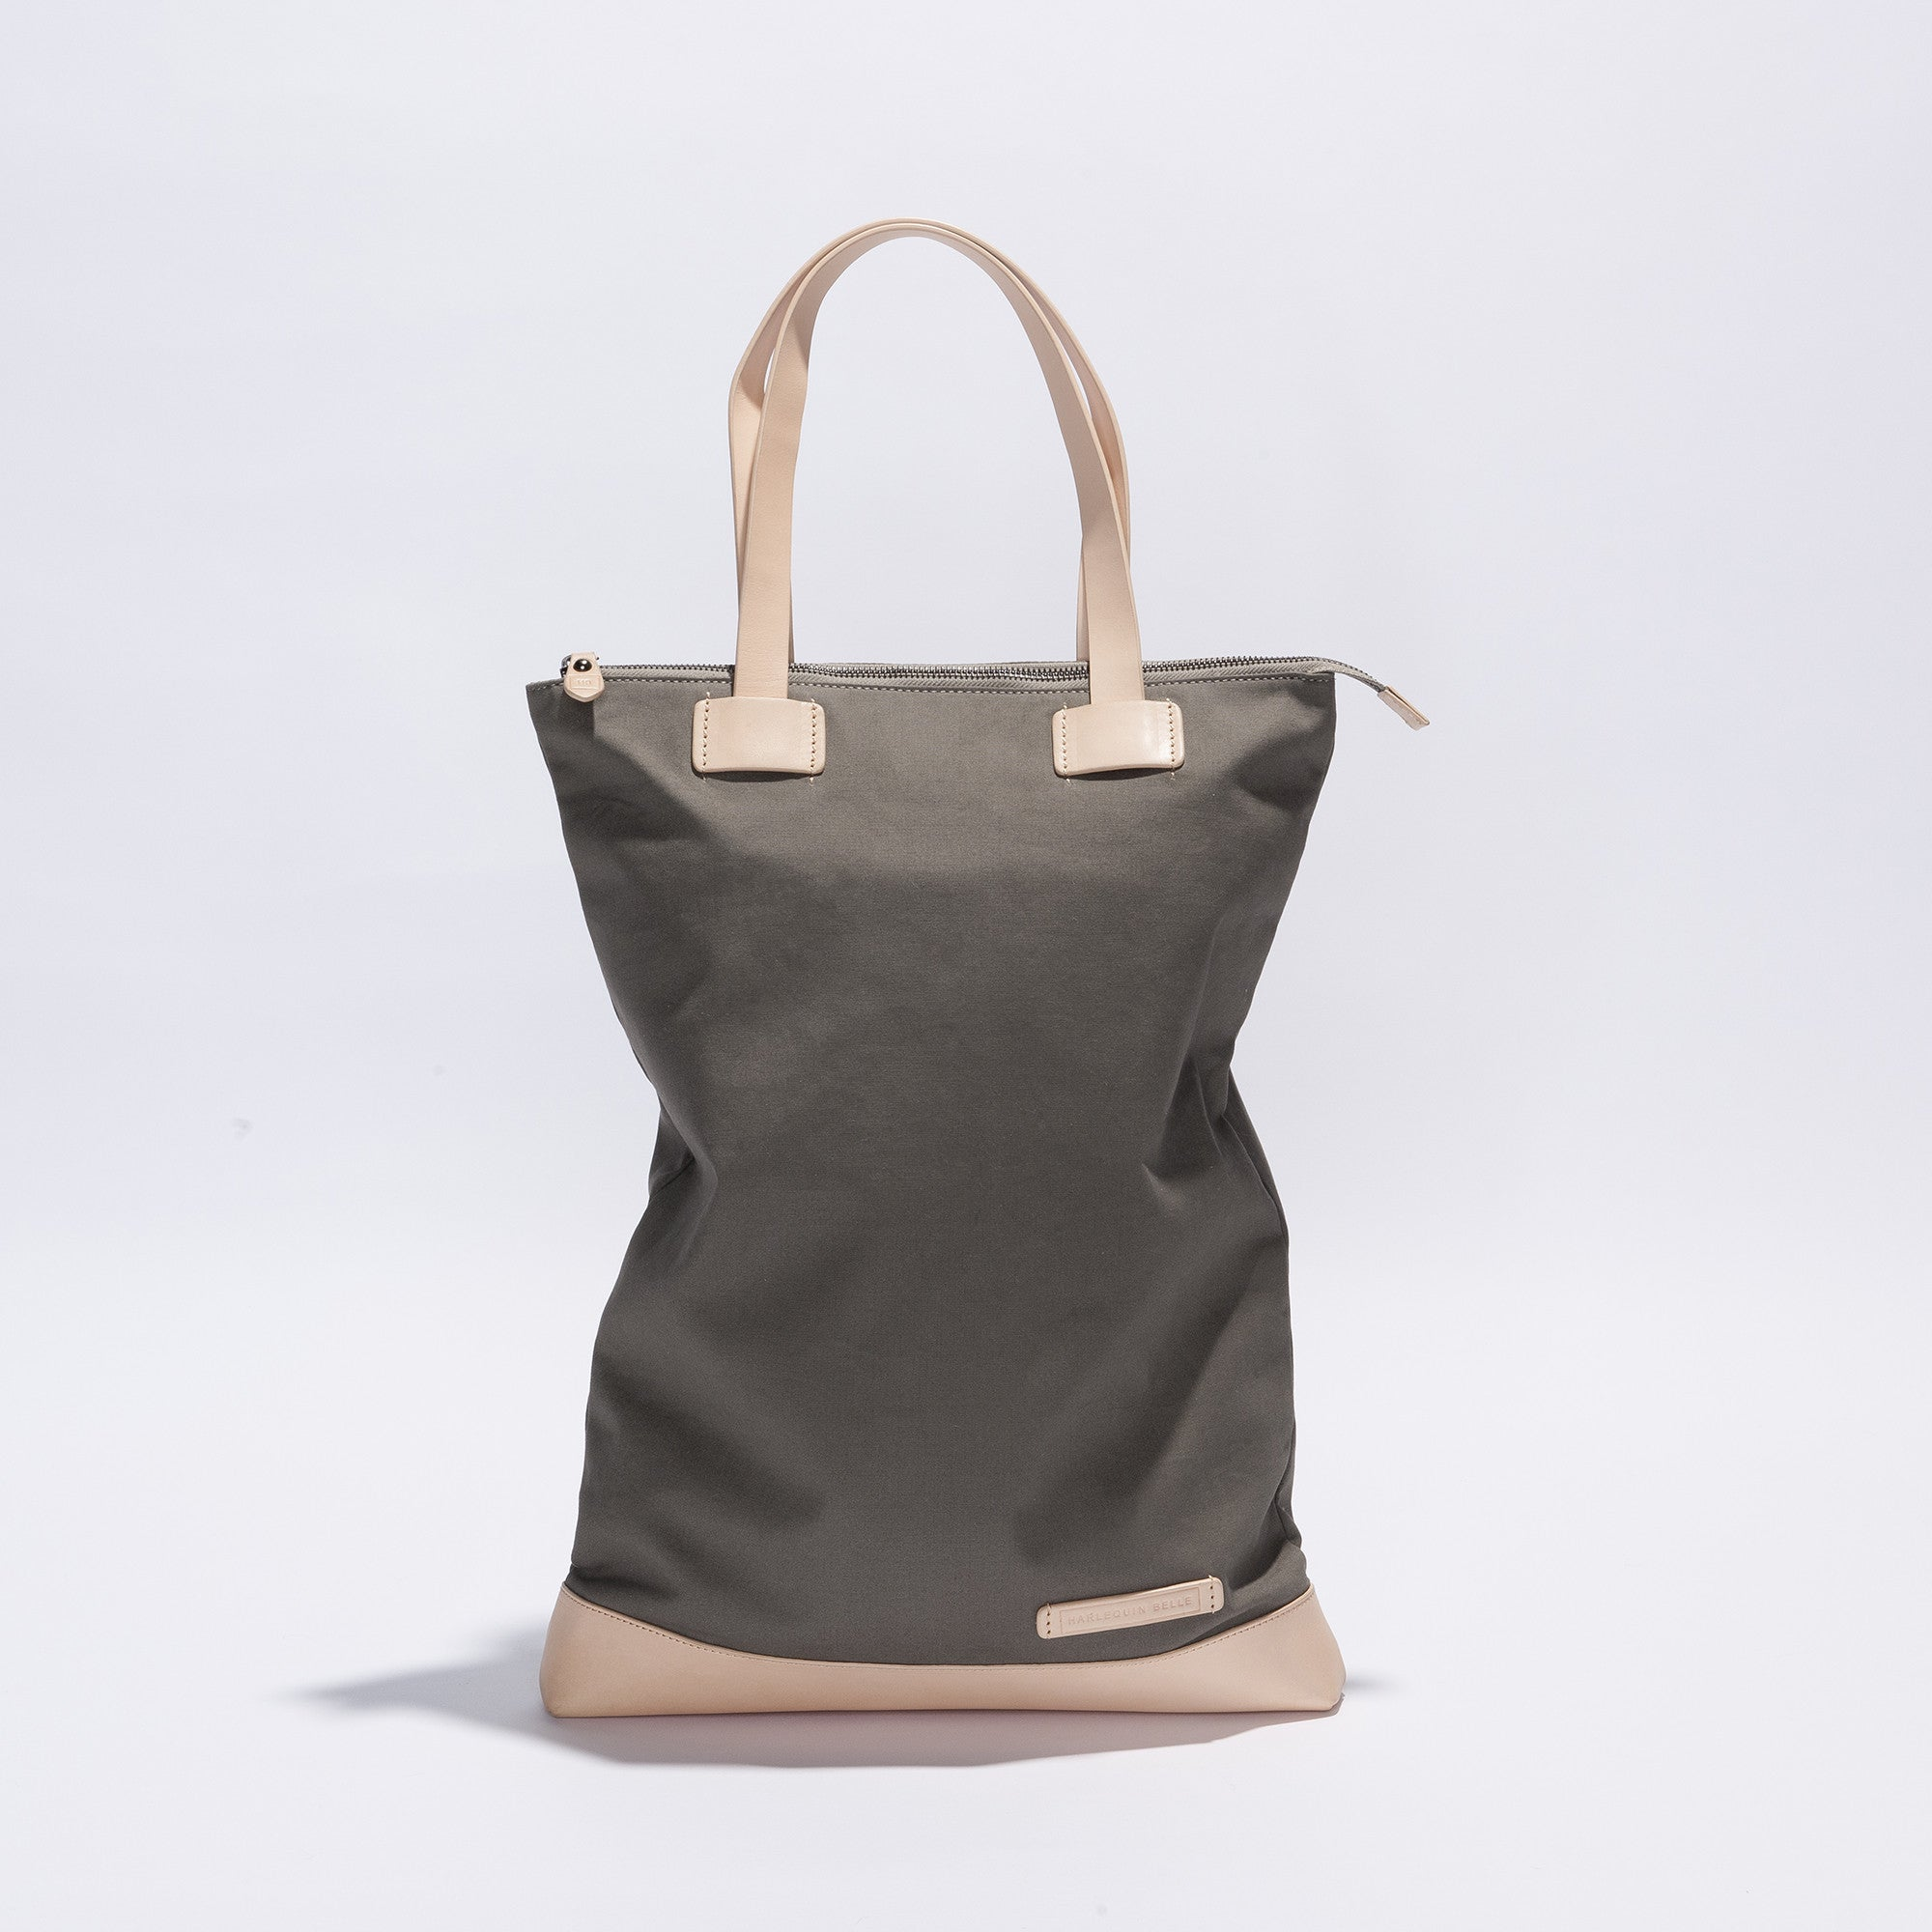 Wanderlust Backpack Bag - Charcoal / Nude Canvas